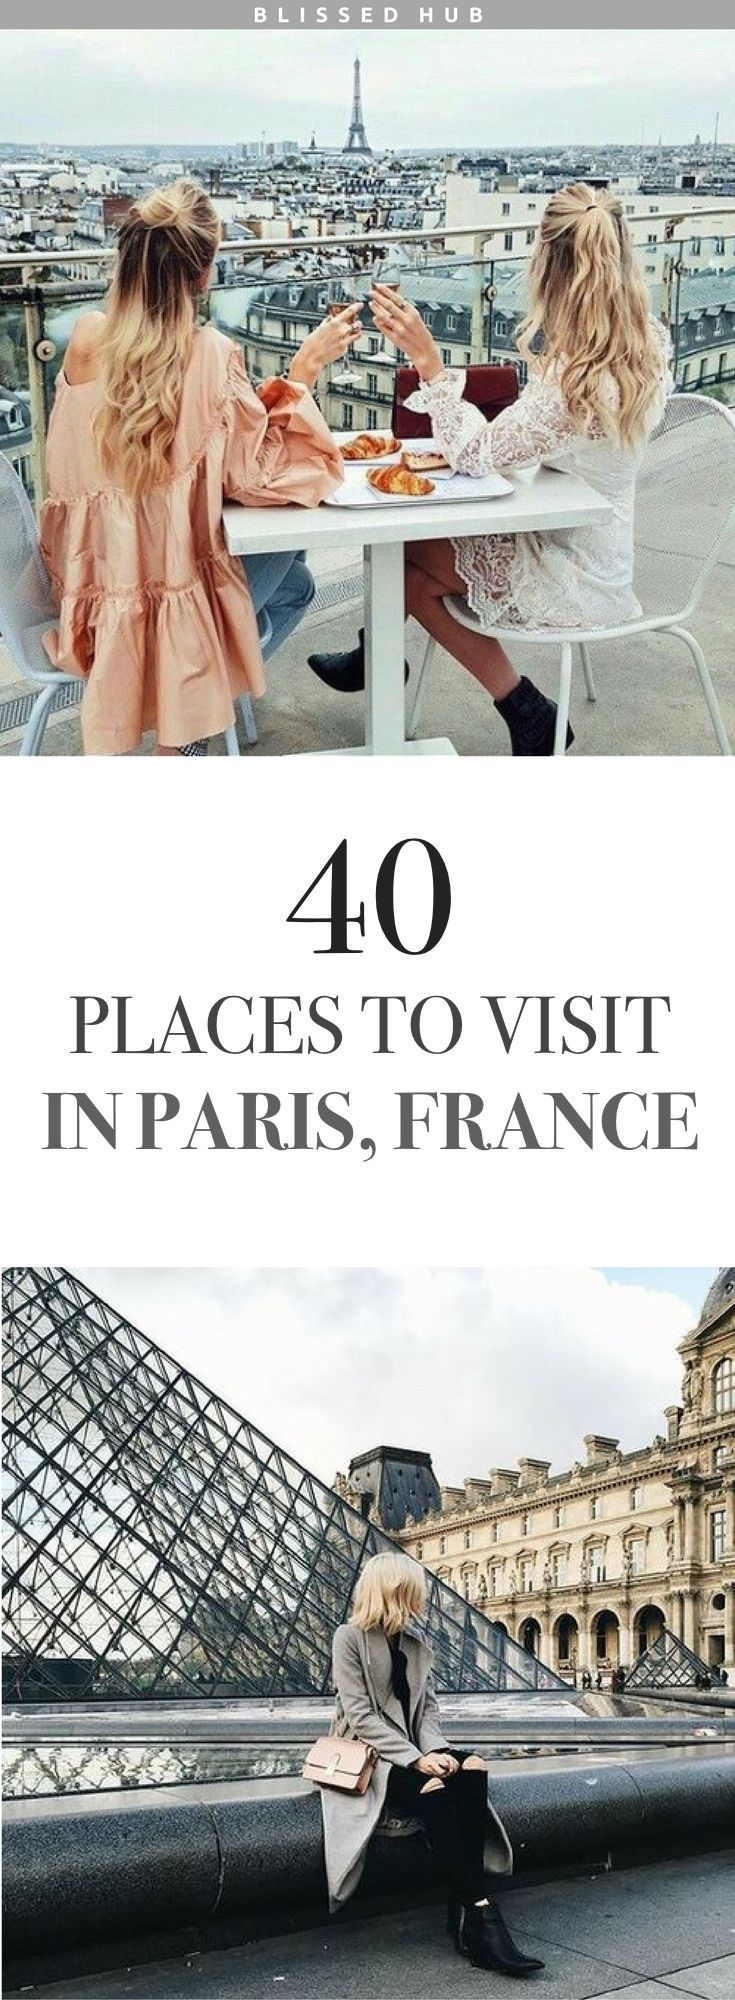 40 PLACES TO VIST IN PARIS FRANCE | paris, france, eiffel tower, the lourve, vacation, holiday ideas, places to go | Paris is so much for than the typical Eiffel Tower, who knew there were so many exquisite attractions!